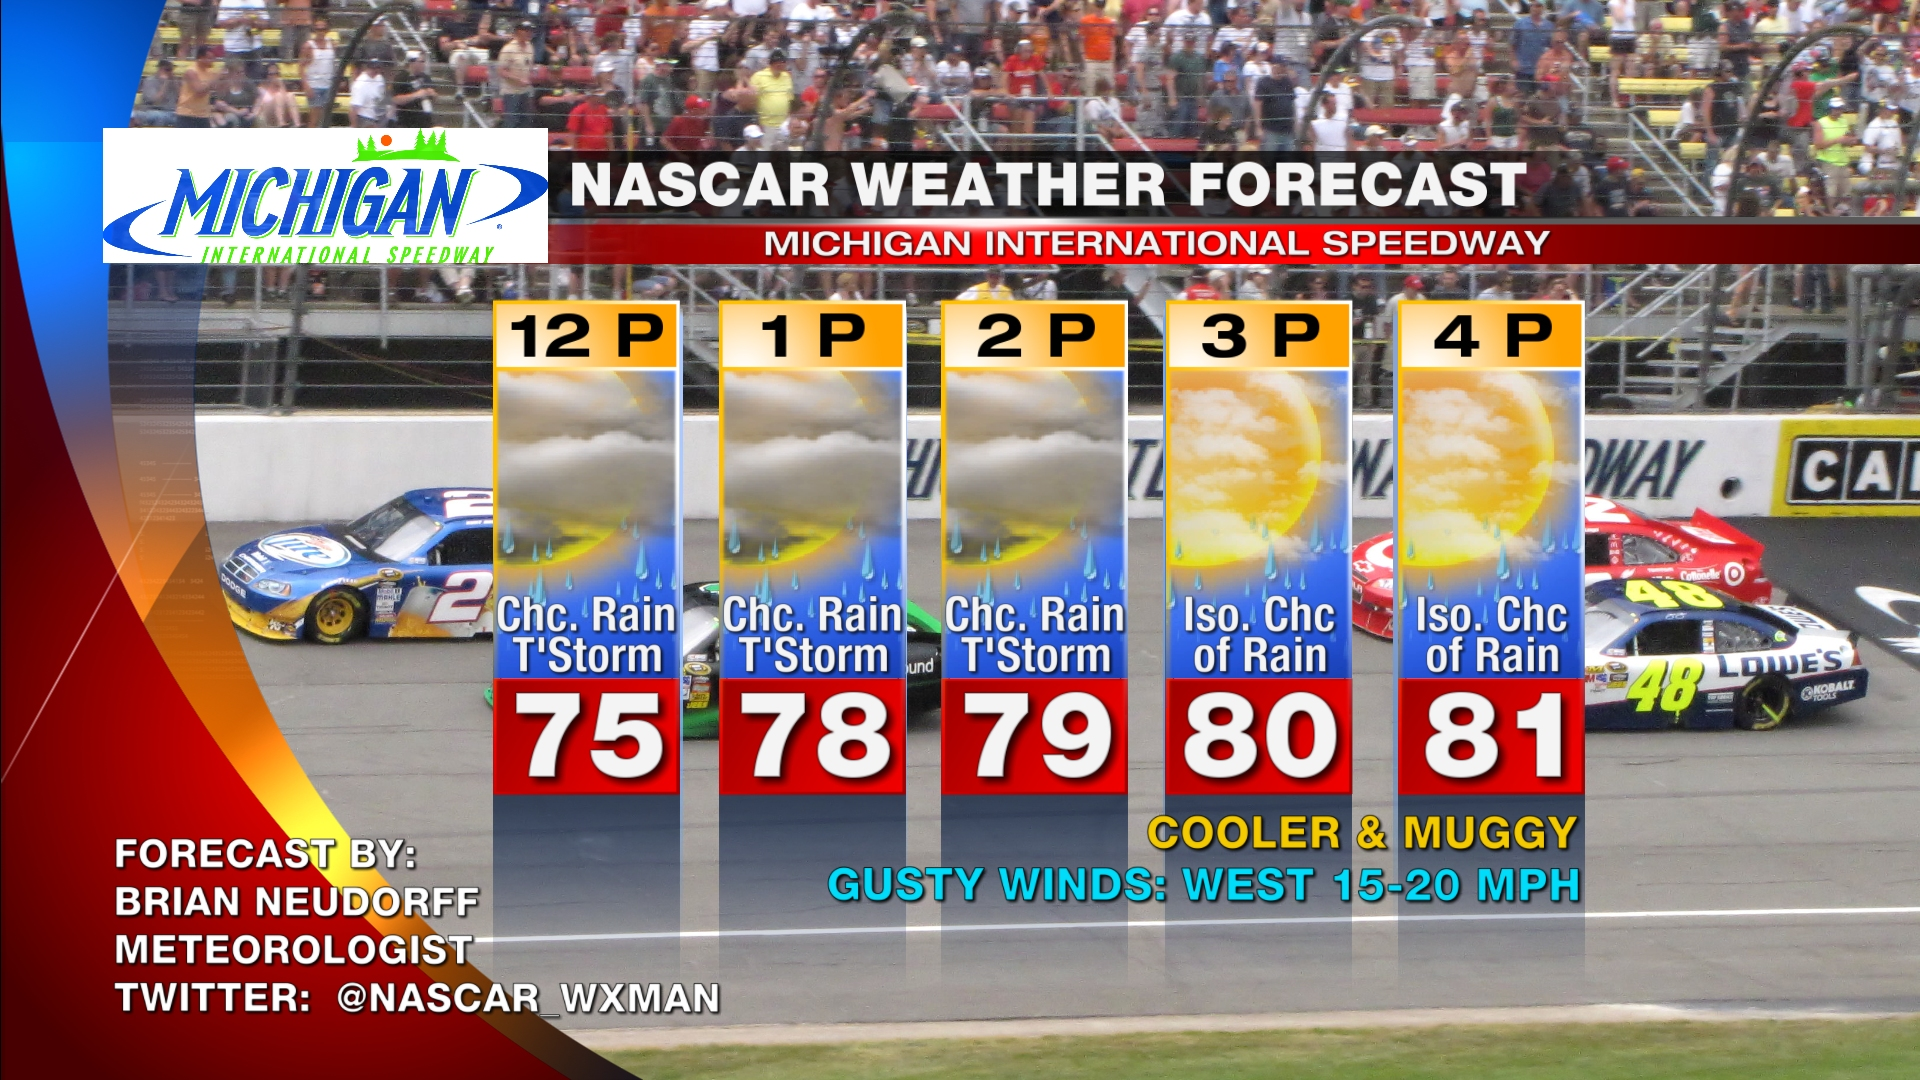 Nascar At Michigan International Speedway Radar And Race Day Weather Forecast Nascar Wx Man Metservice is new zealand's national weather authority, providing accurate forecasting for farming regions throughout nz. nascar wx man